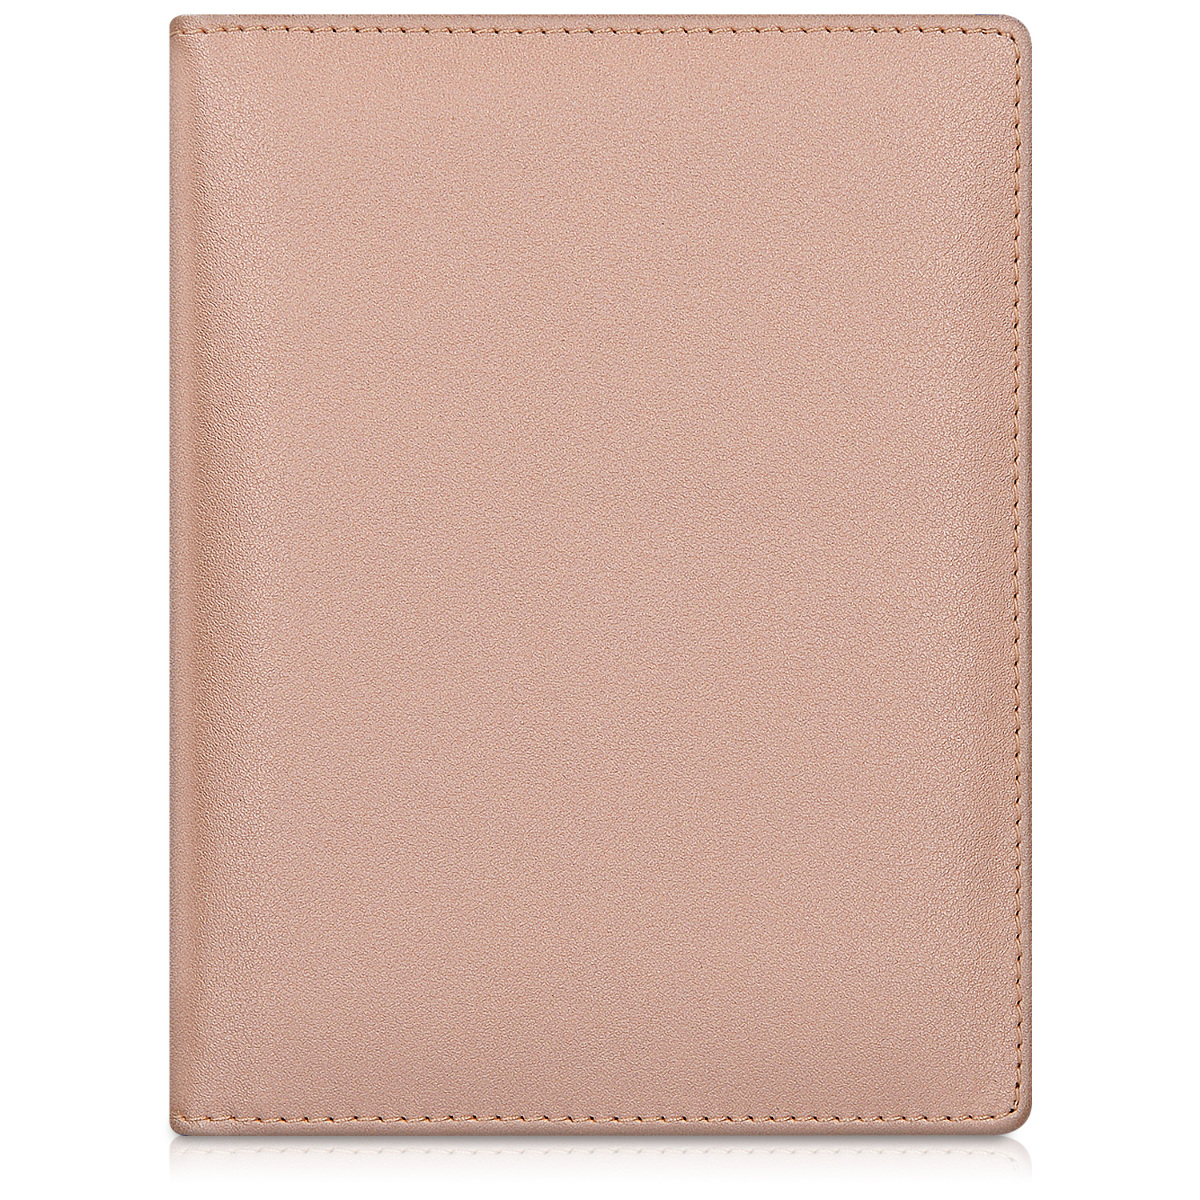 9db2794c87cf Details about PU Leather Passport Holder Travel Wallet in Rose Gold